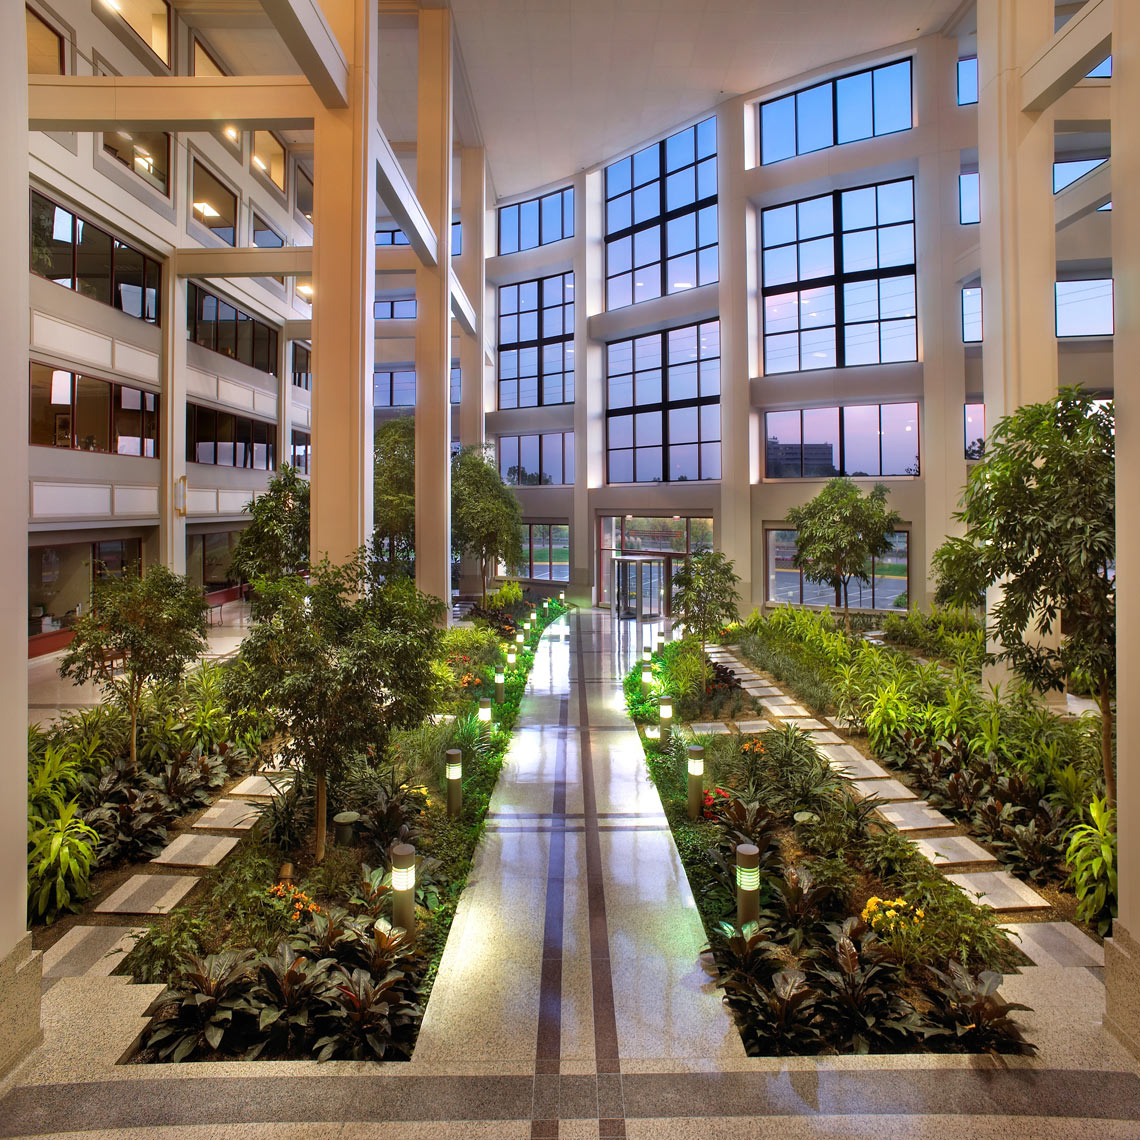 Planted atrium of Bachman's/4 story/glassed front/architectural photo